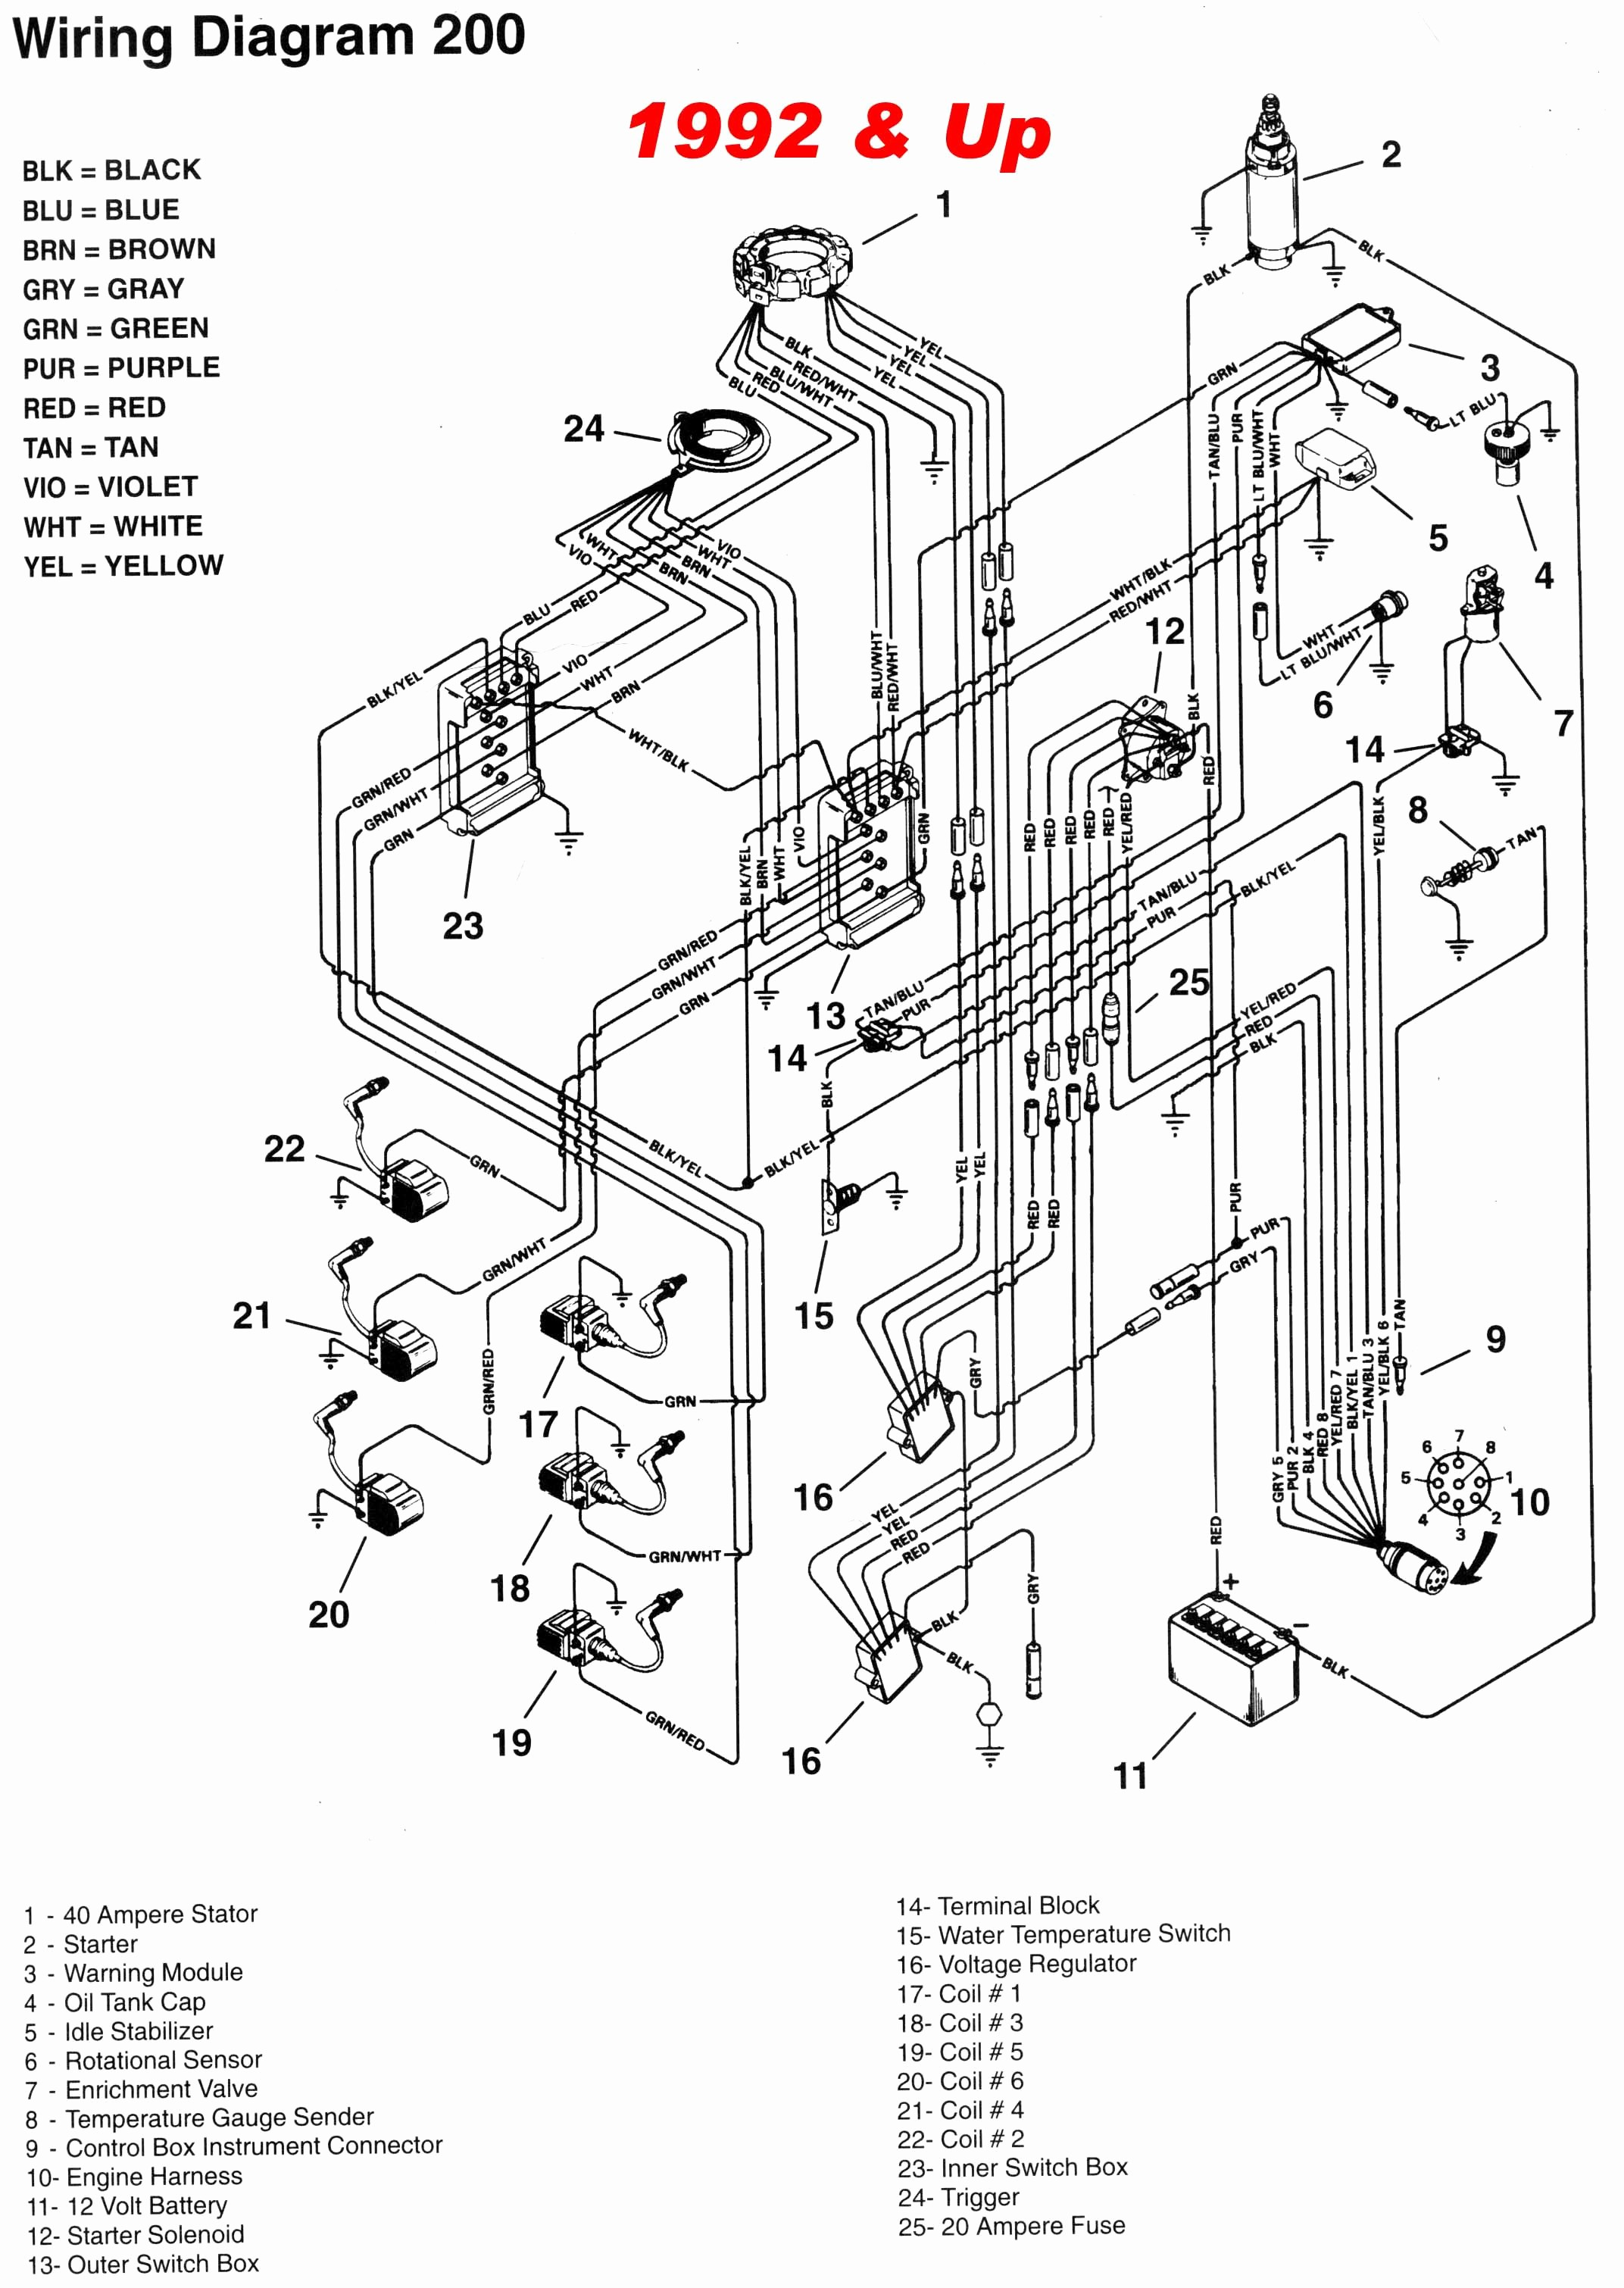 Hp Power Supply Wiring Diagram Electrical Drawing 19 Inch Lcd Monitor Schematic Circuit Ap15pc52 Trusted Diagrams U2022 Rh Sarome Co Laptop